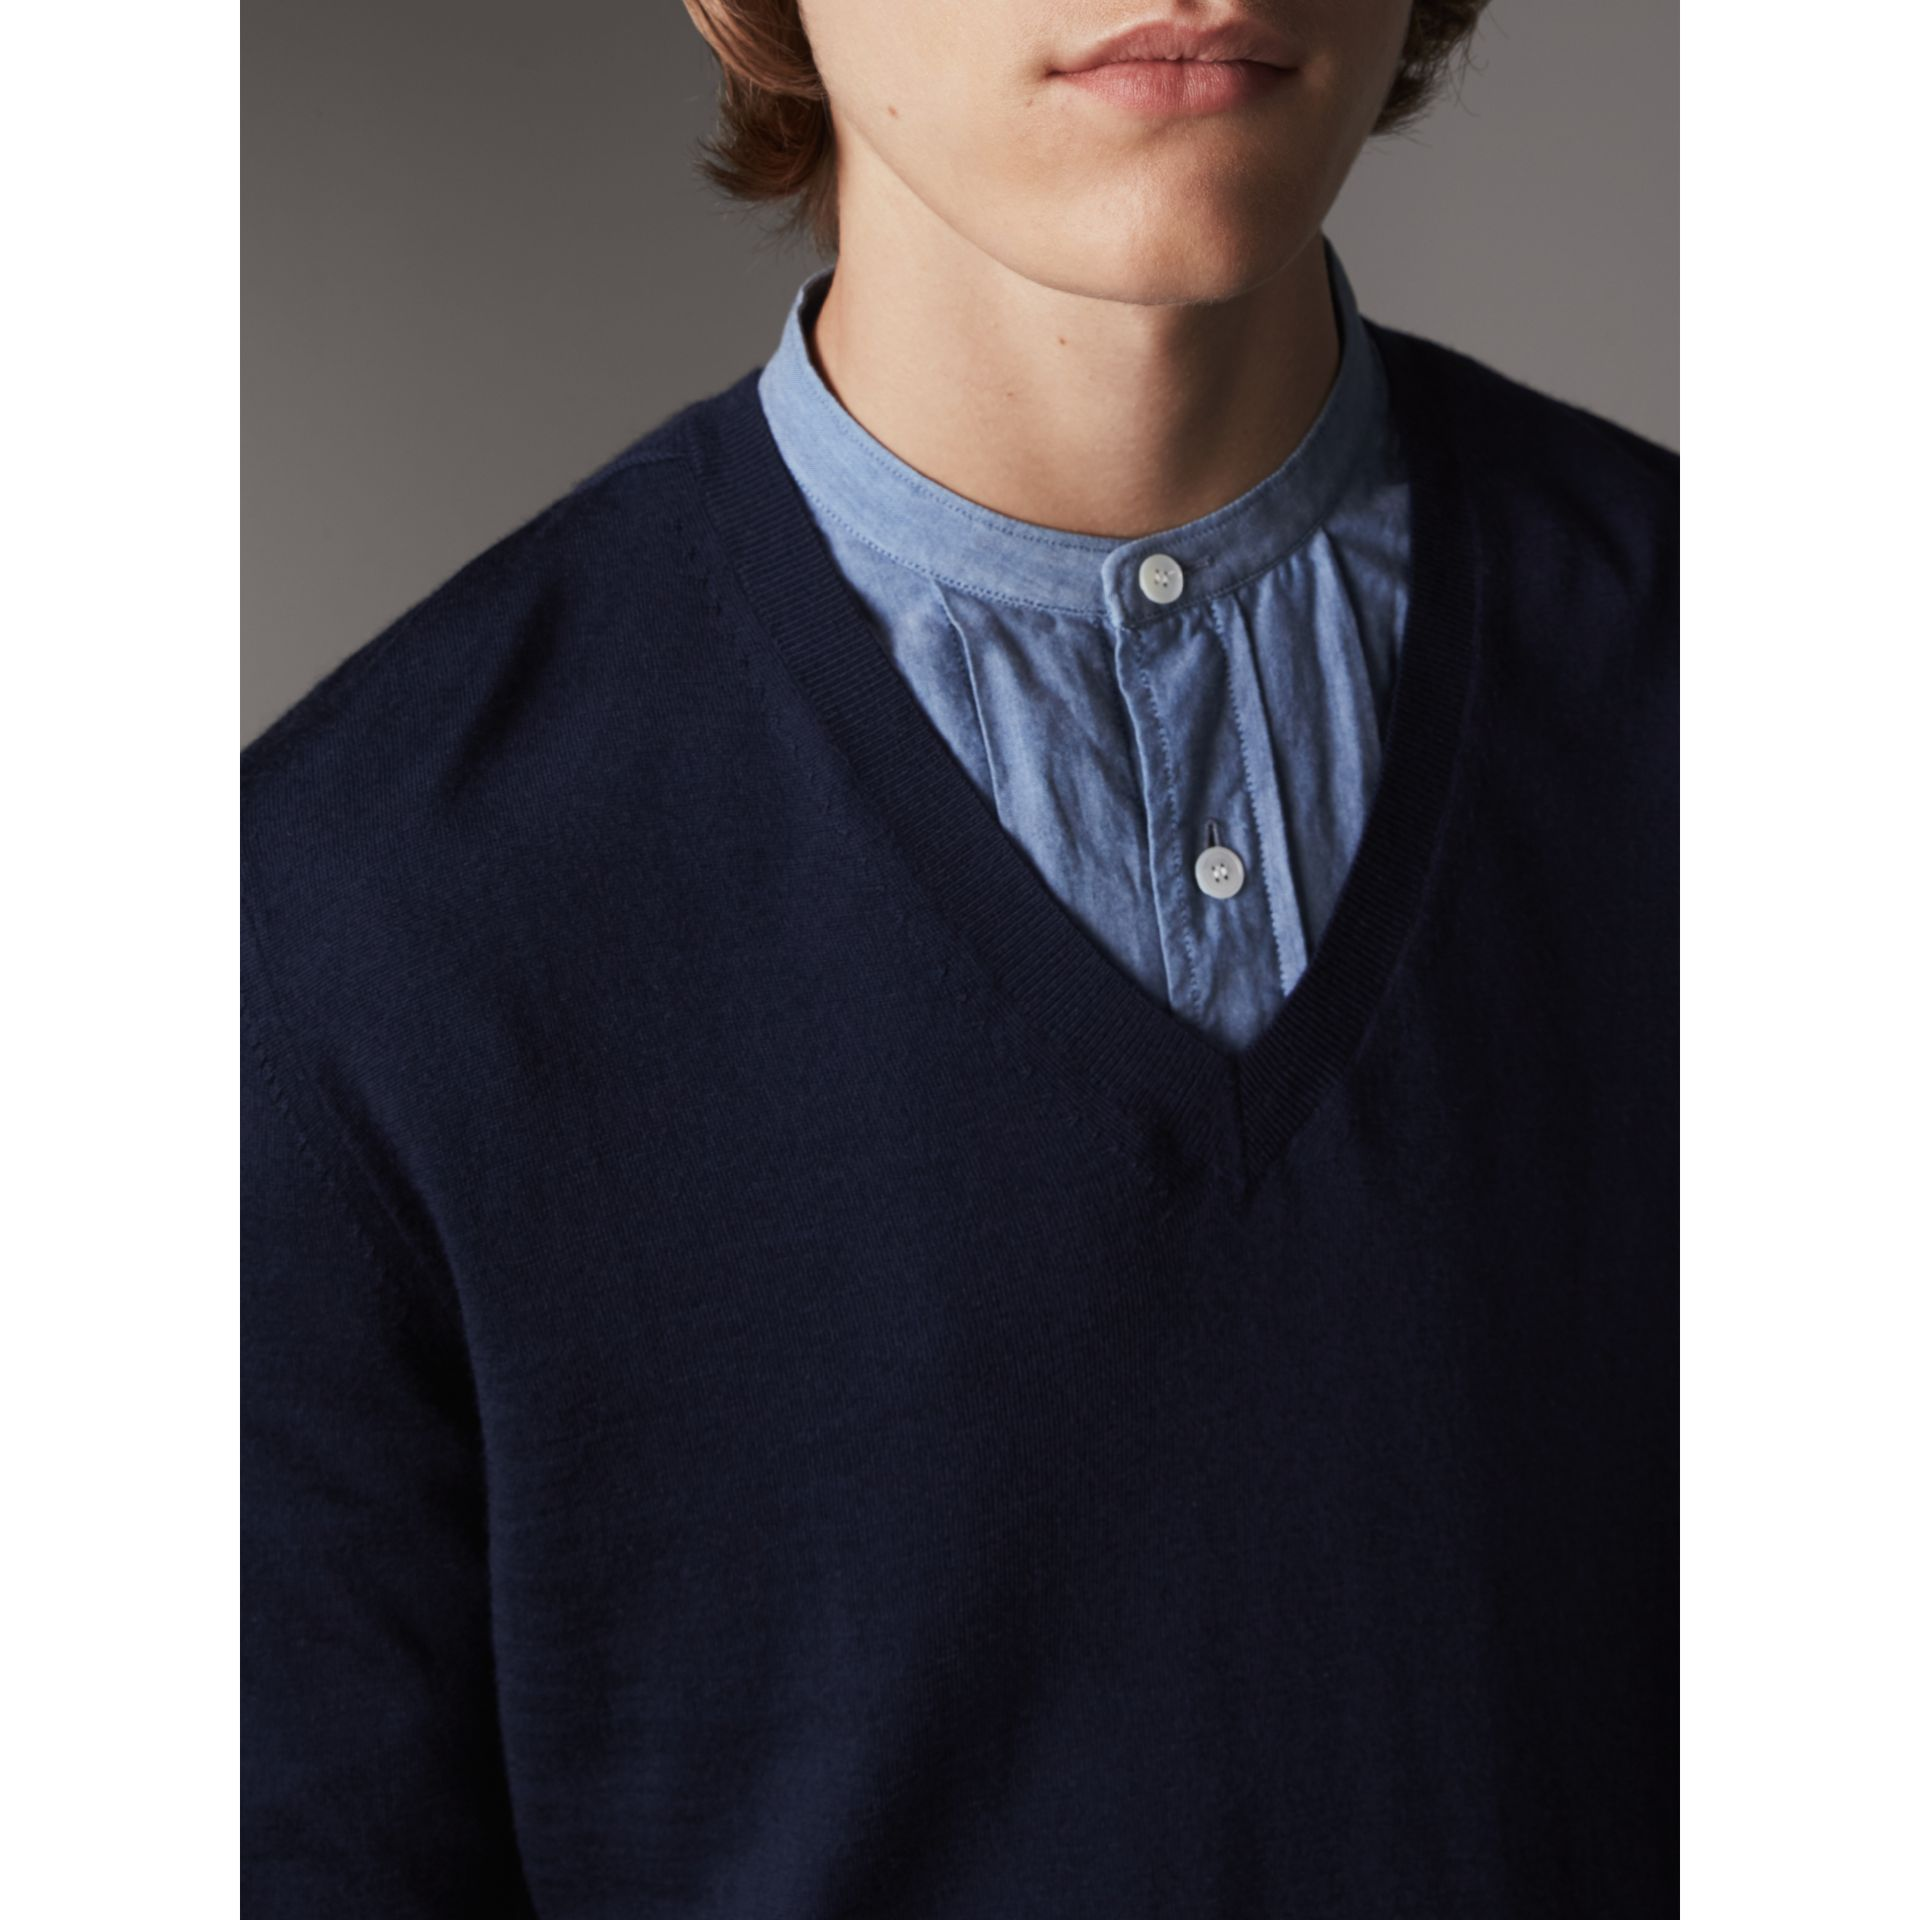 Merino Wool V-neck Sweater in Navy - Men | Burberry Singapore - gallery image 2